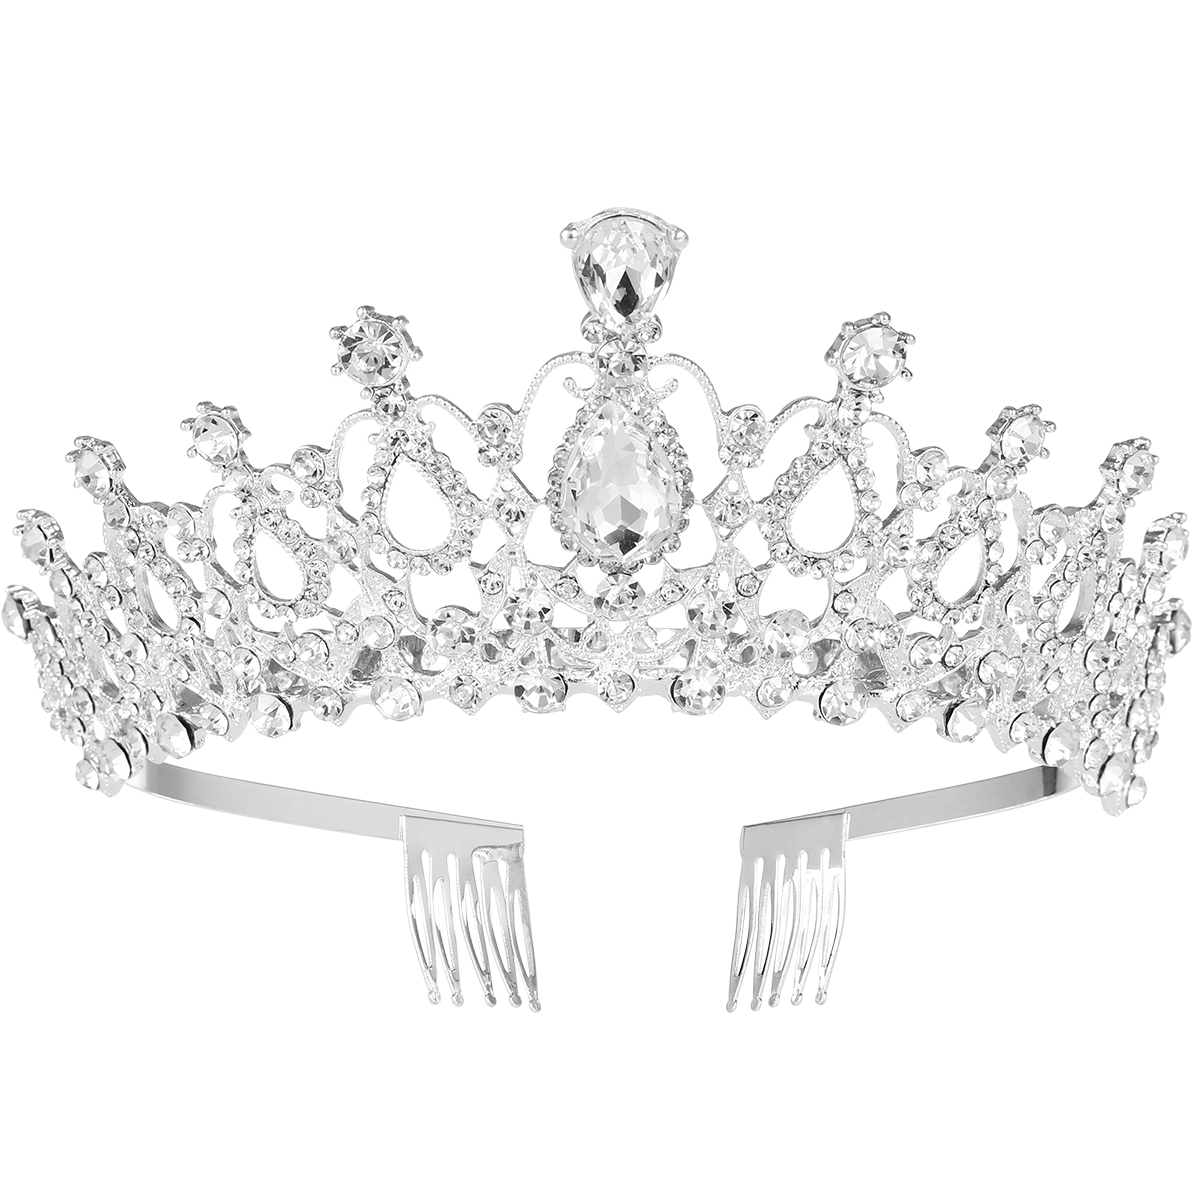 Bridal & Wedding Party Jewelry Sale 20% Off Hand Made Crystal Rhinestone Tiara Comb